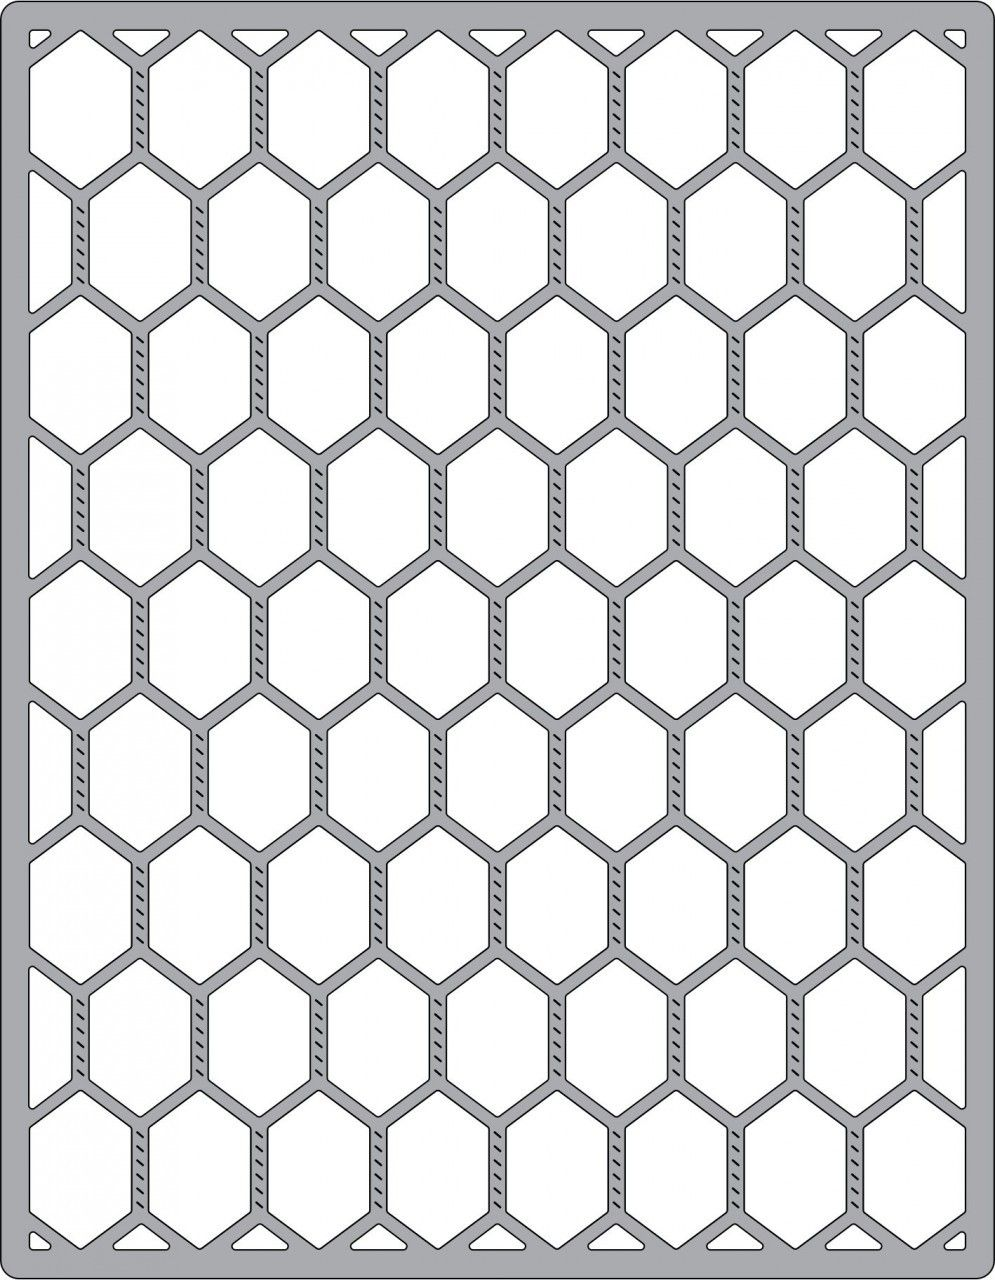 Chicken Wire - Cheery Lynn Designs, WANT WANT WANT!! GETTING GETTING ...